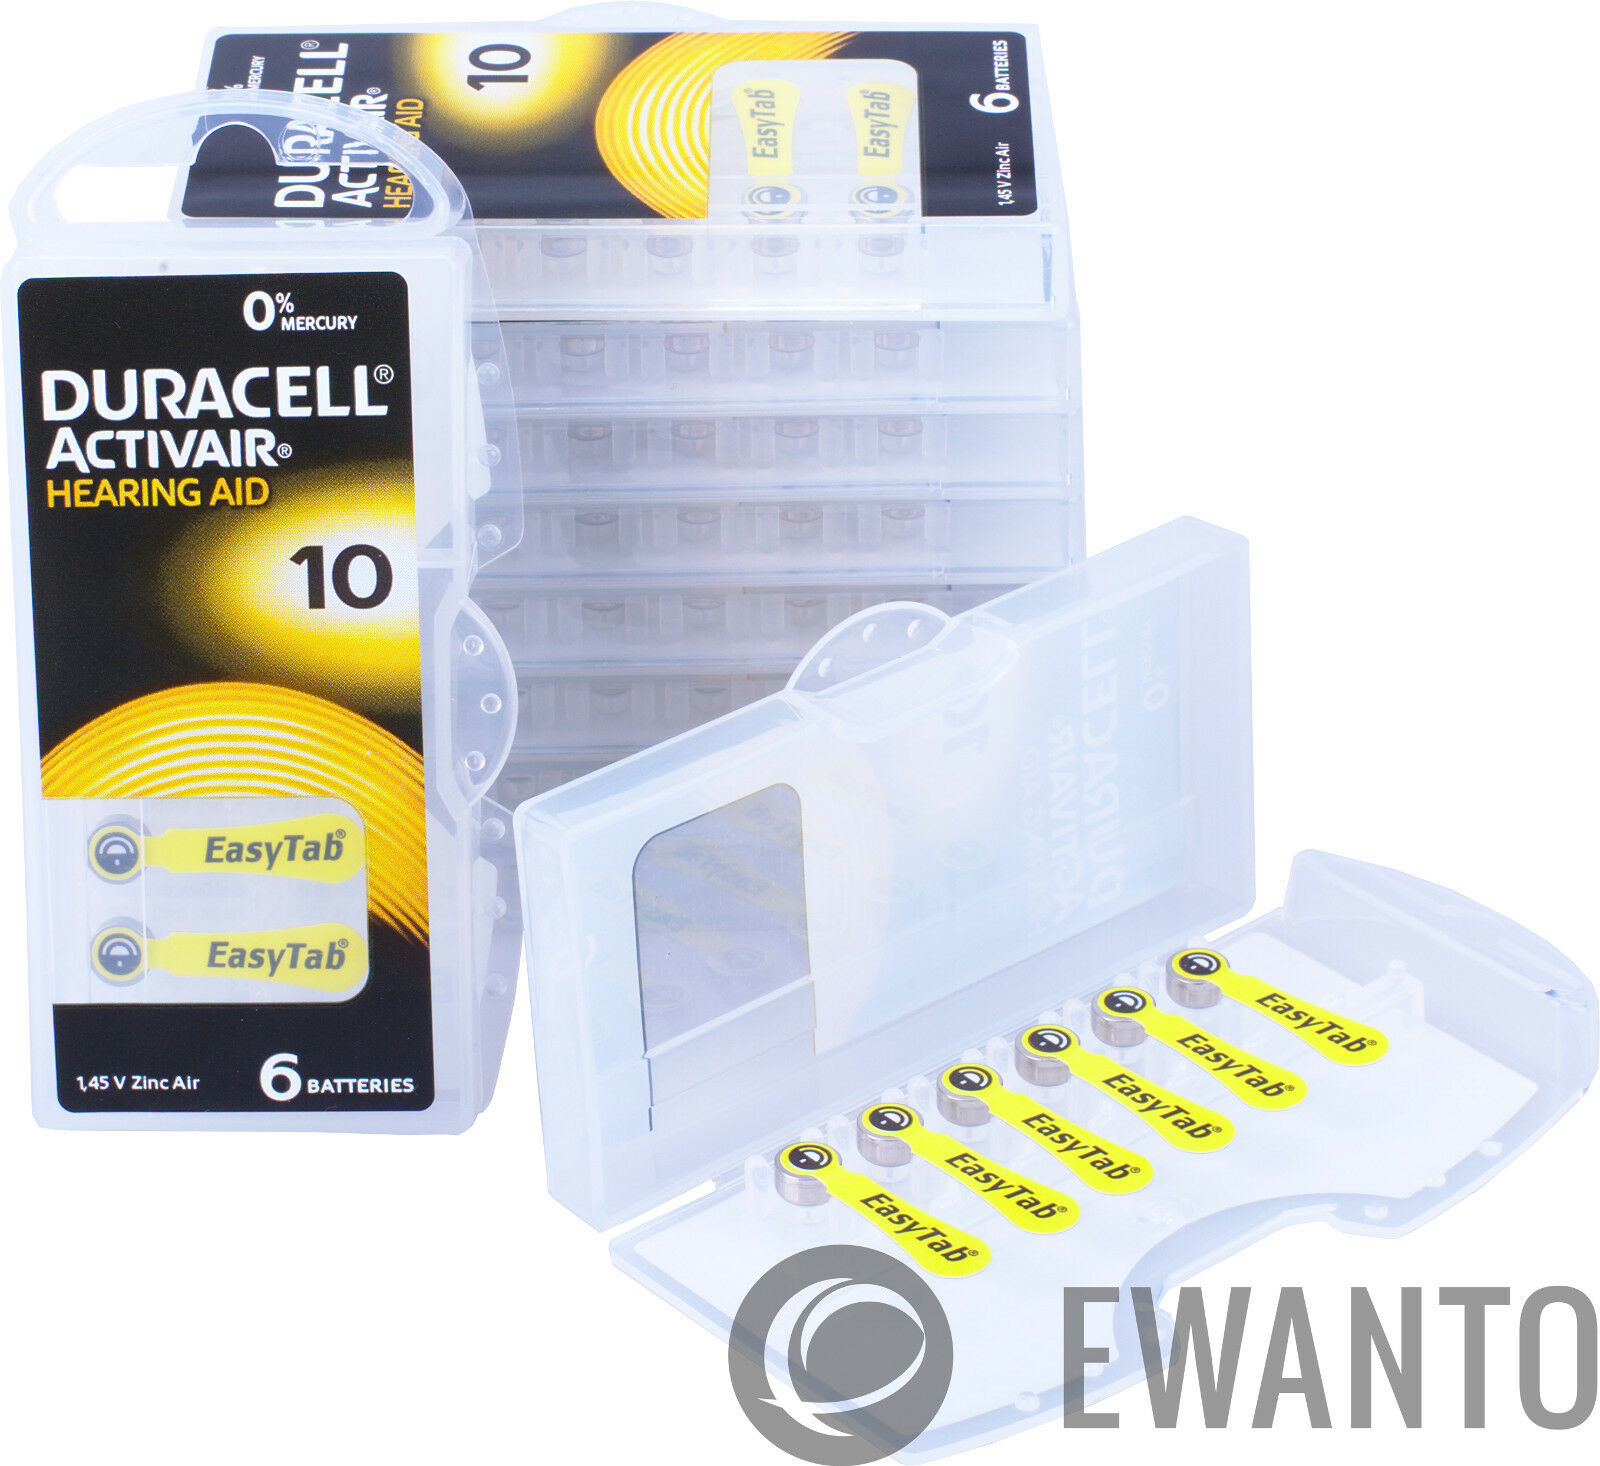 300 x Duracell Activair Hearing Aid Batteries Size 10 Hearing Aid 6118 50 Blister